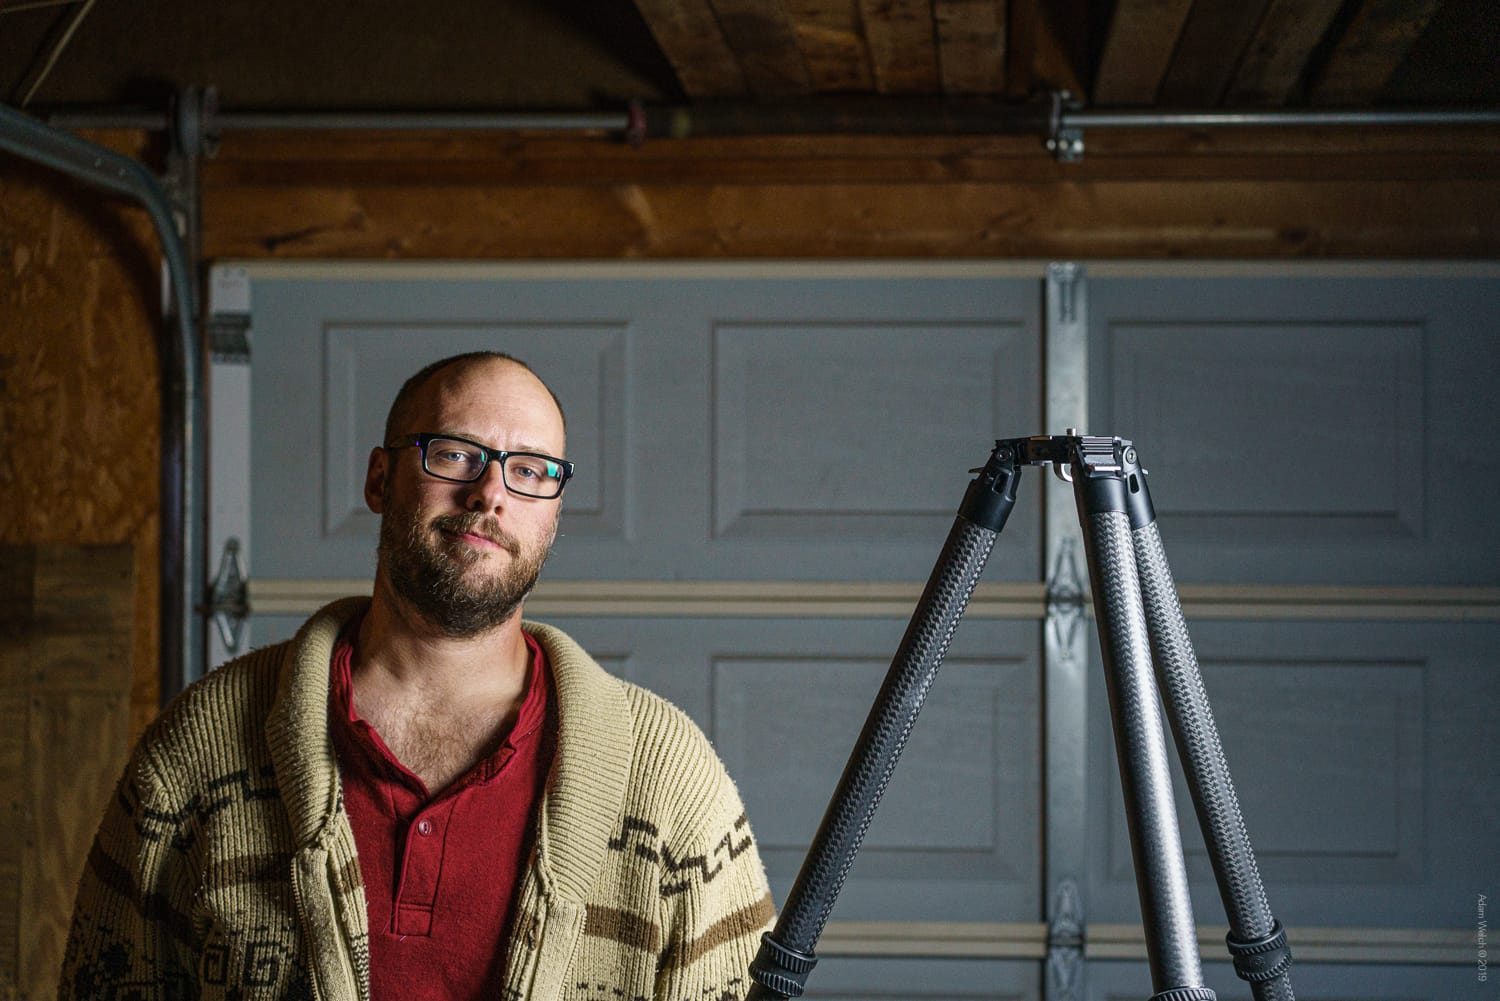 Review of Colorado Tripod Company's 4-Series Centennial Tripod